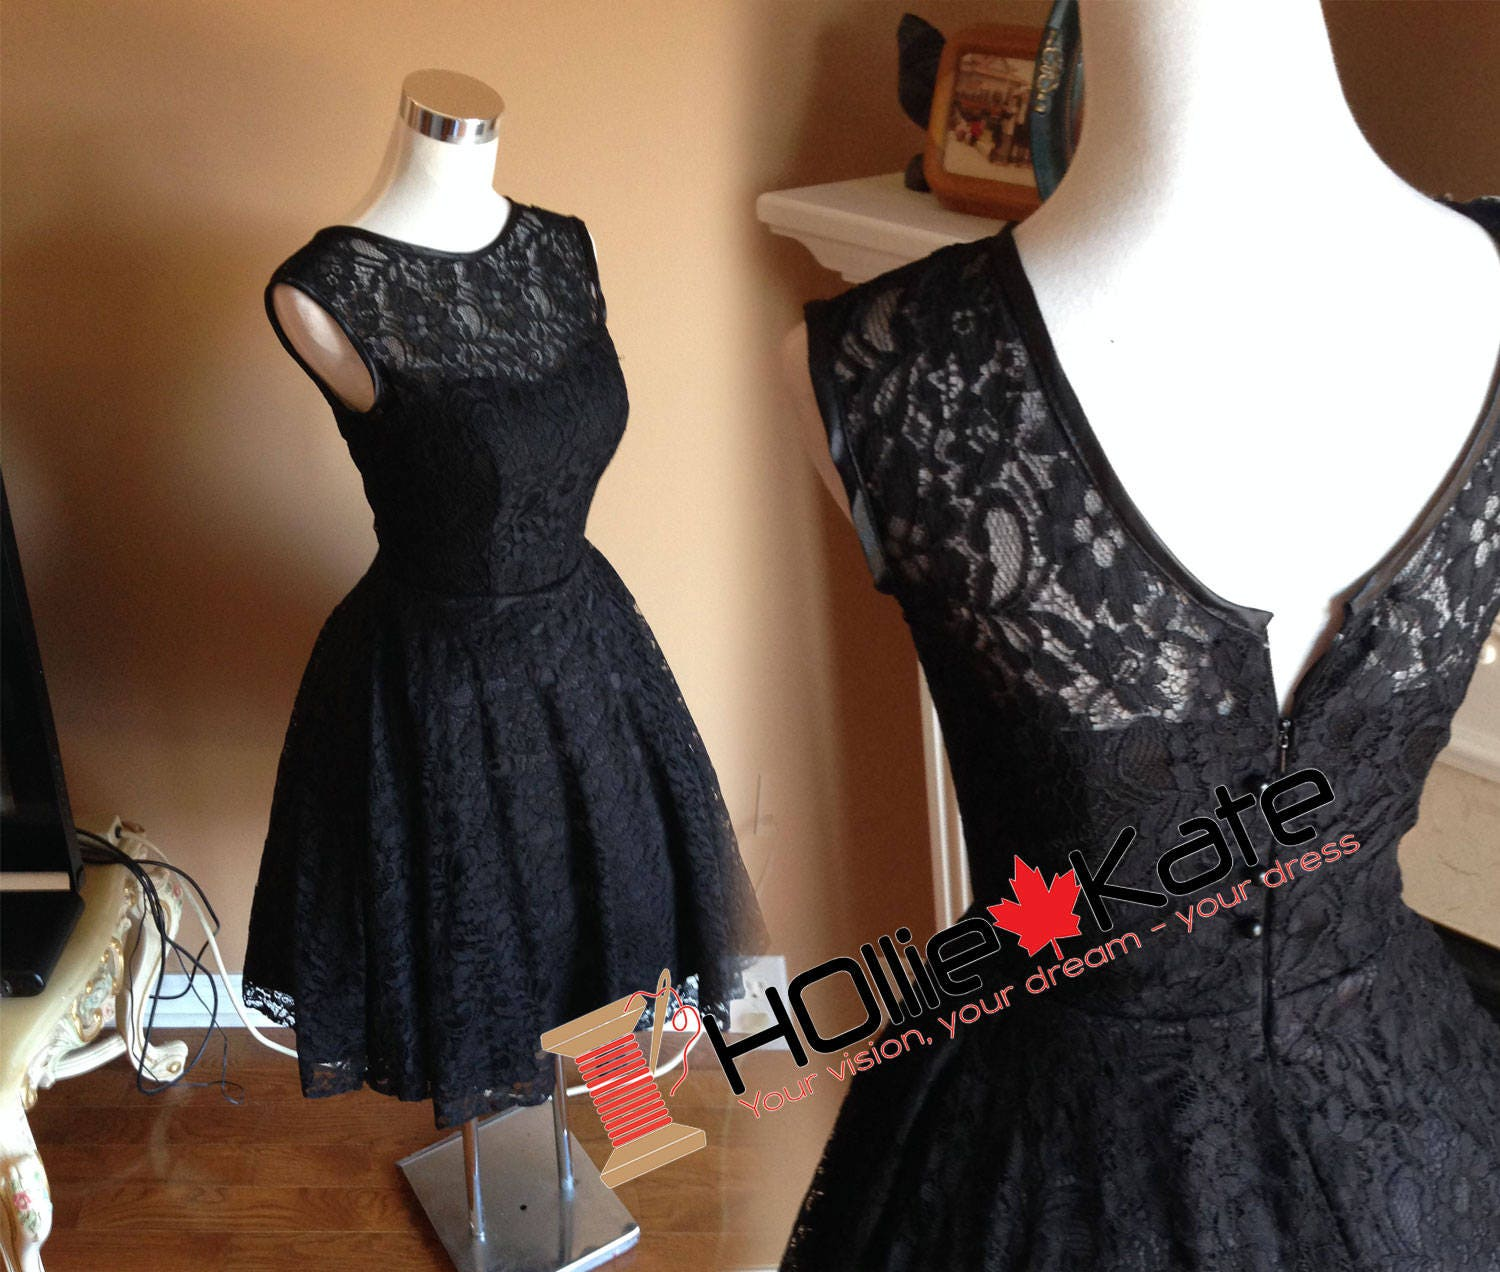 Vintage inspired lace bridesmaid dress audrey hepburn dress zoom ombrellifo Image collections